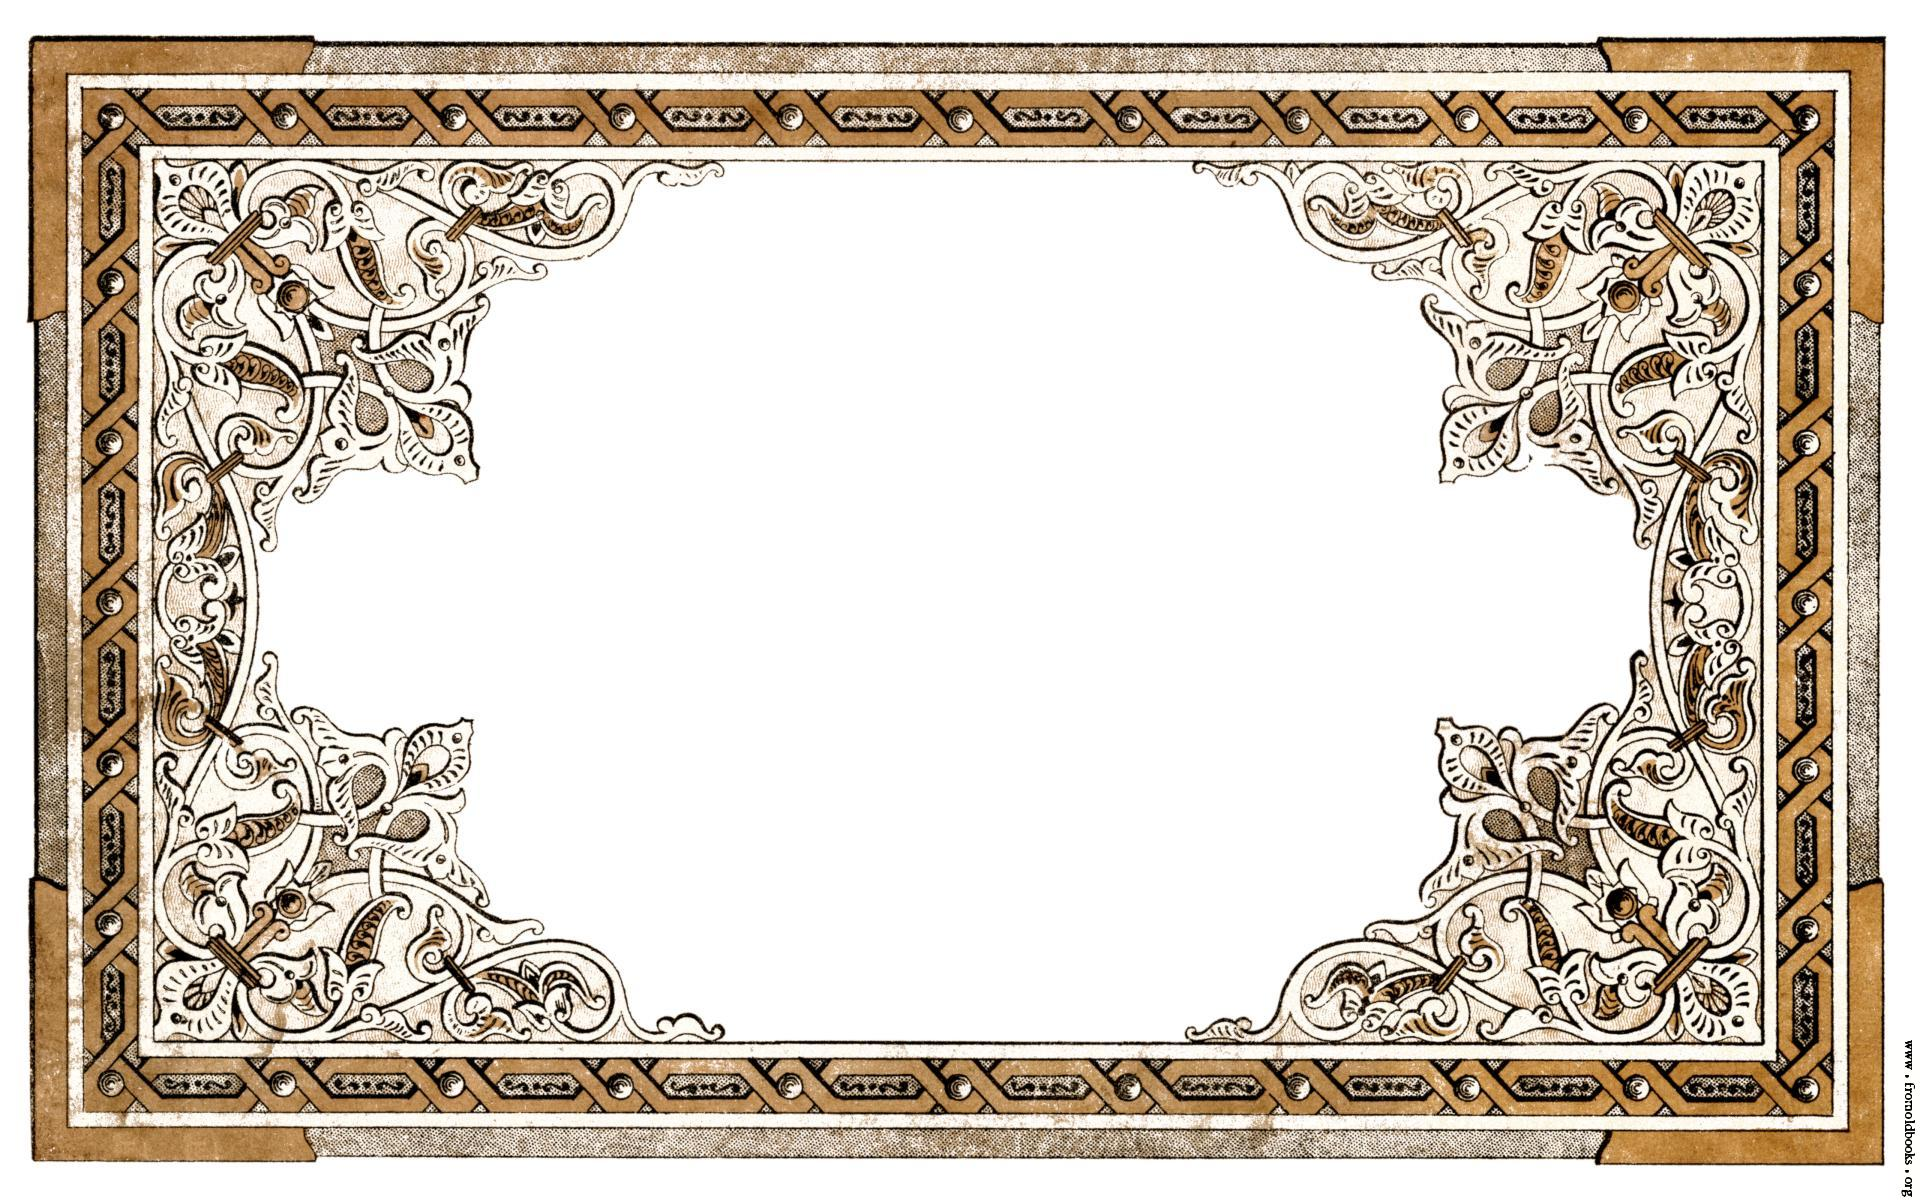 Vintage shabby chic ornate full page border 1920x1200